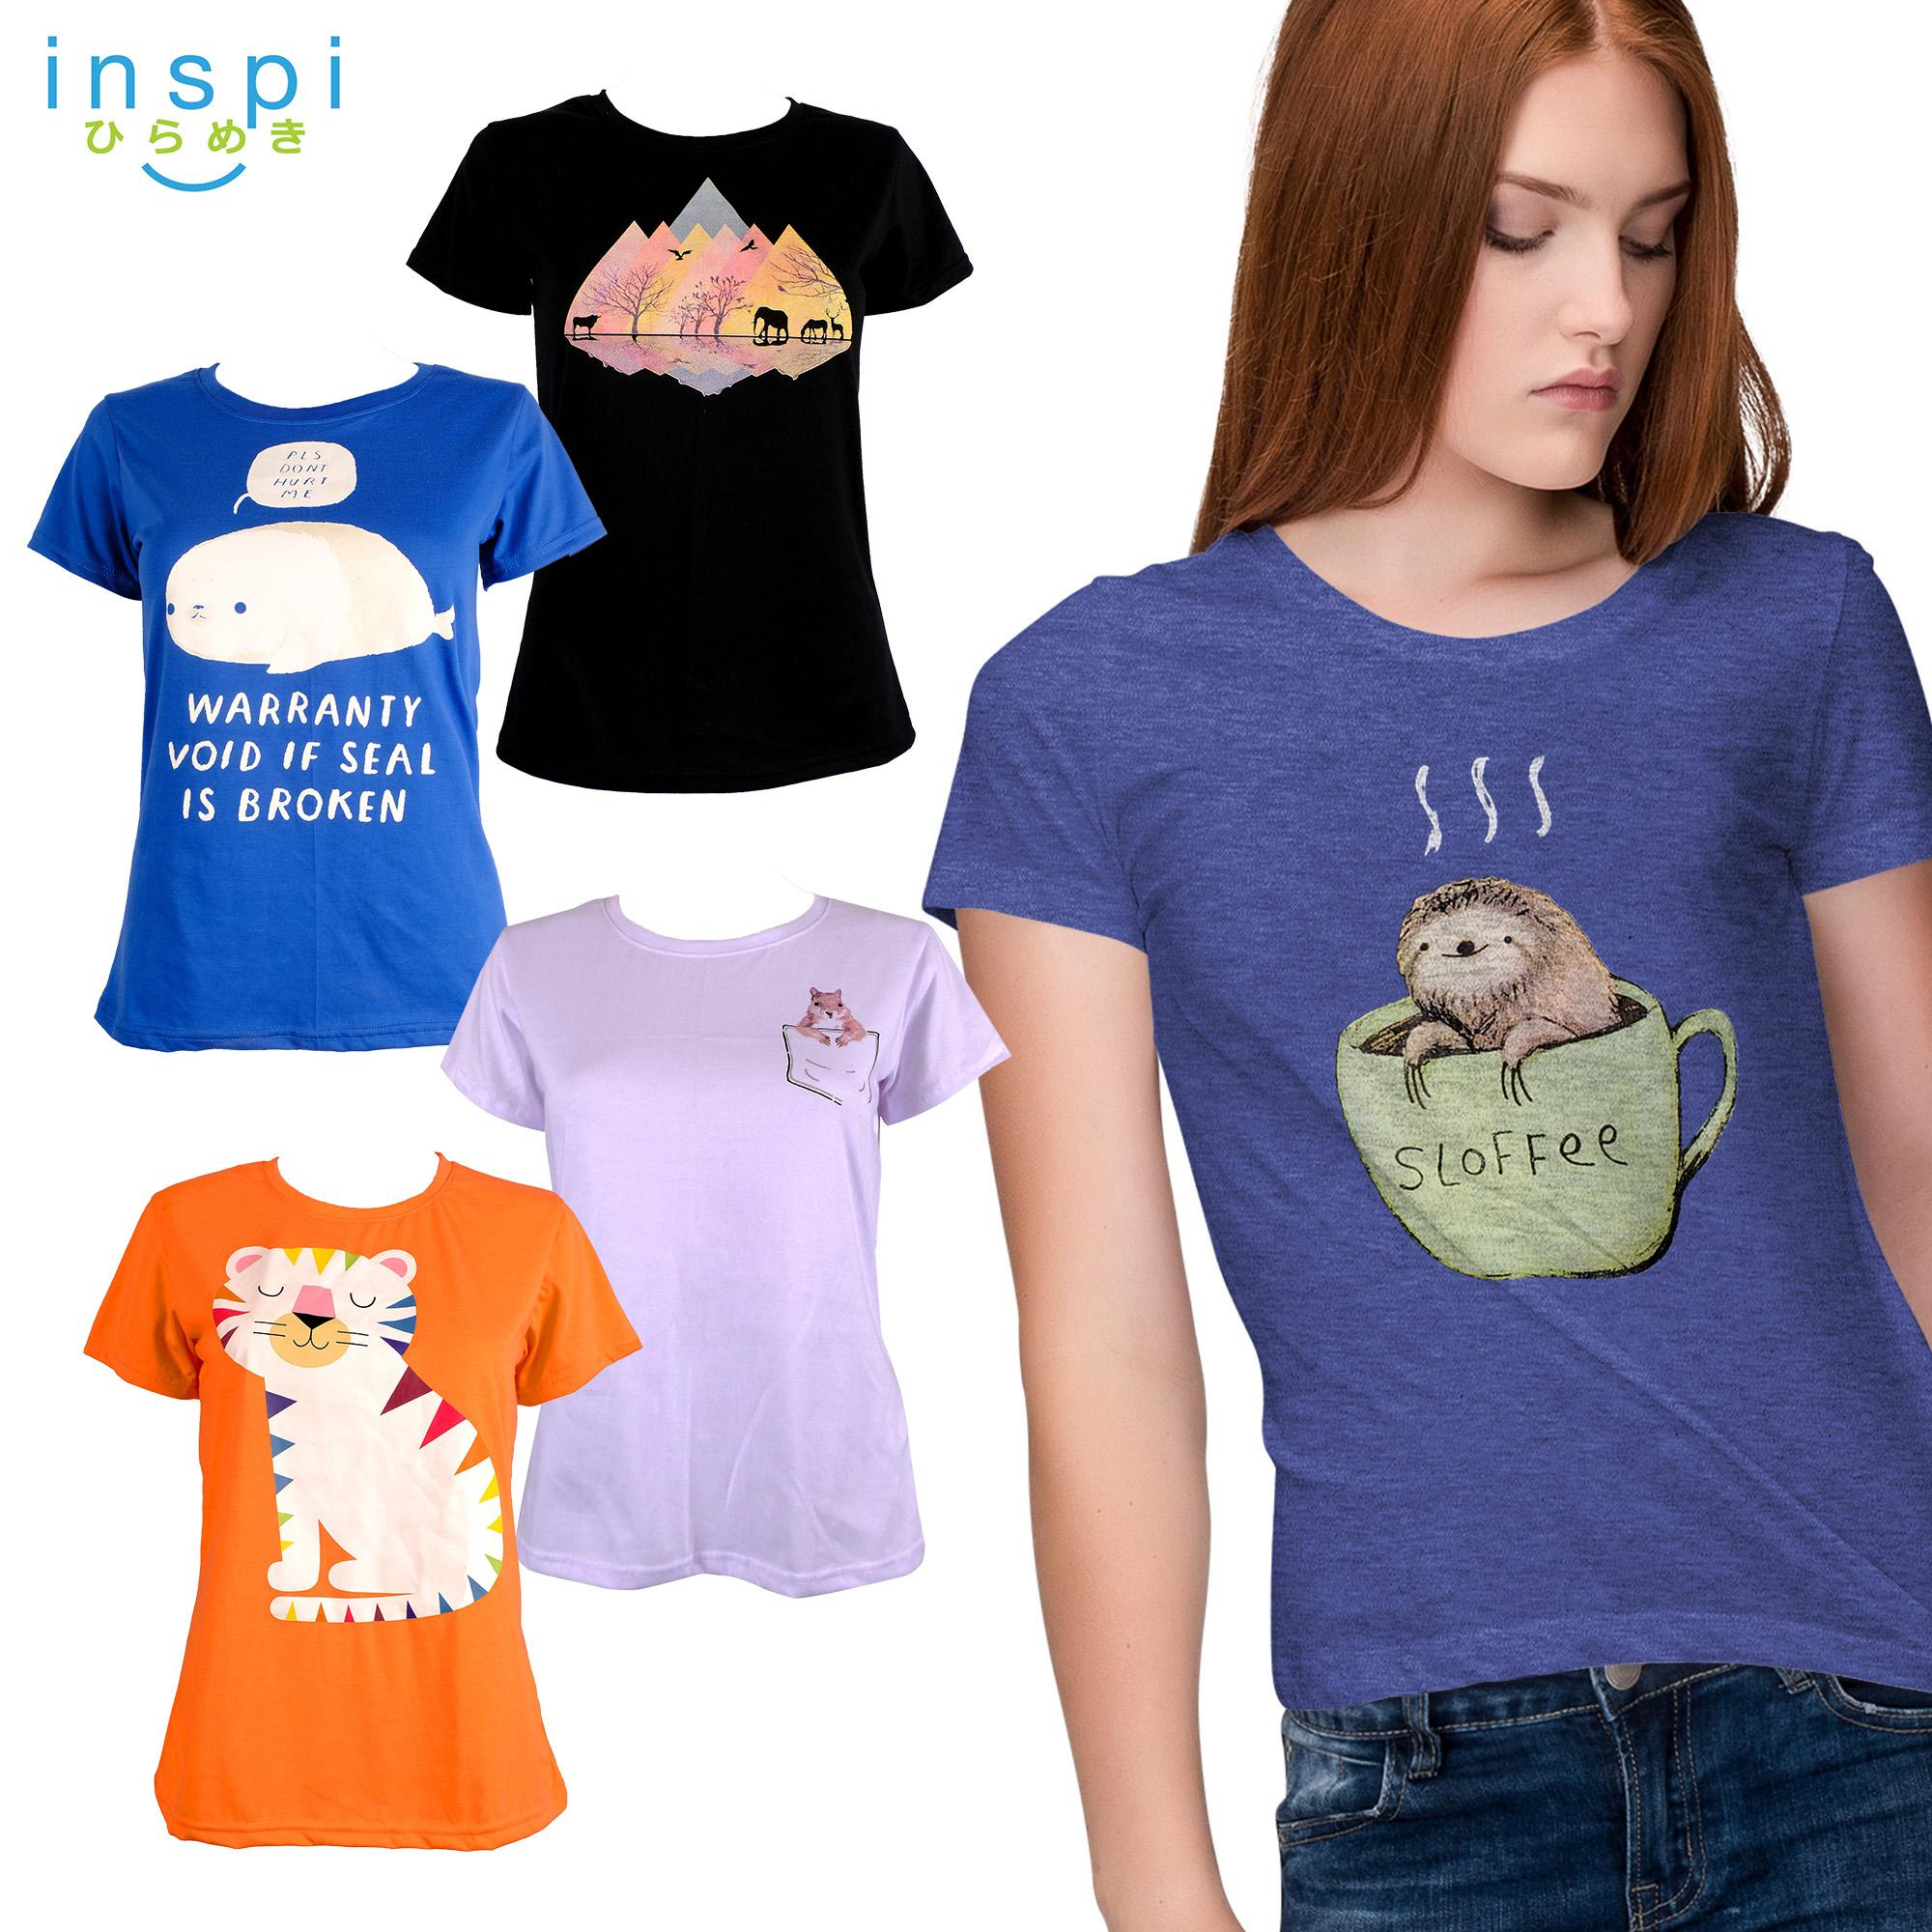 afec60cf56c INSPI Tees Ladies Pet Collection tshirt printed graphic tee Ladies t shirt  shirts women tshirts for